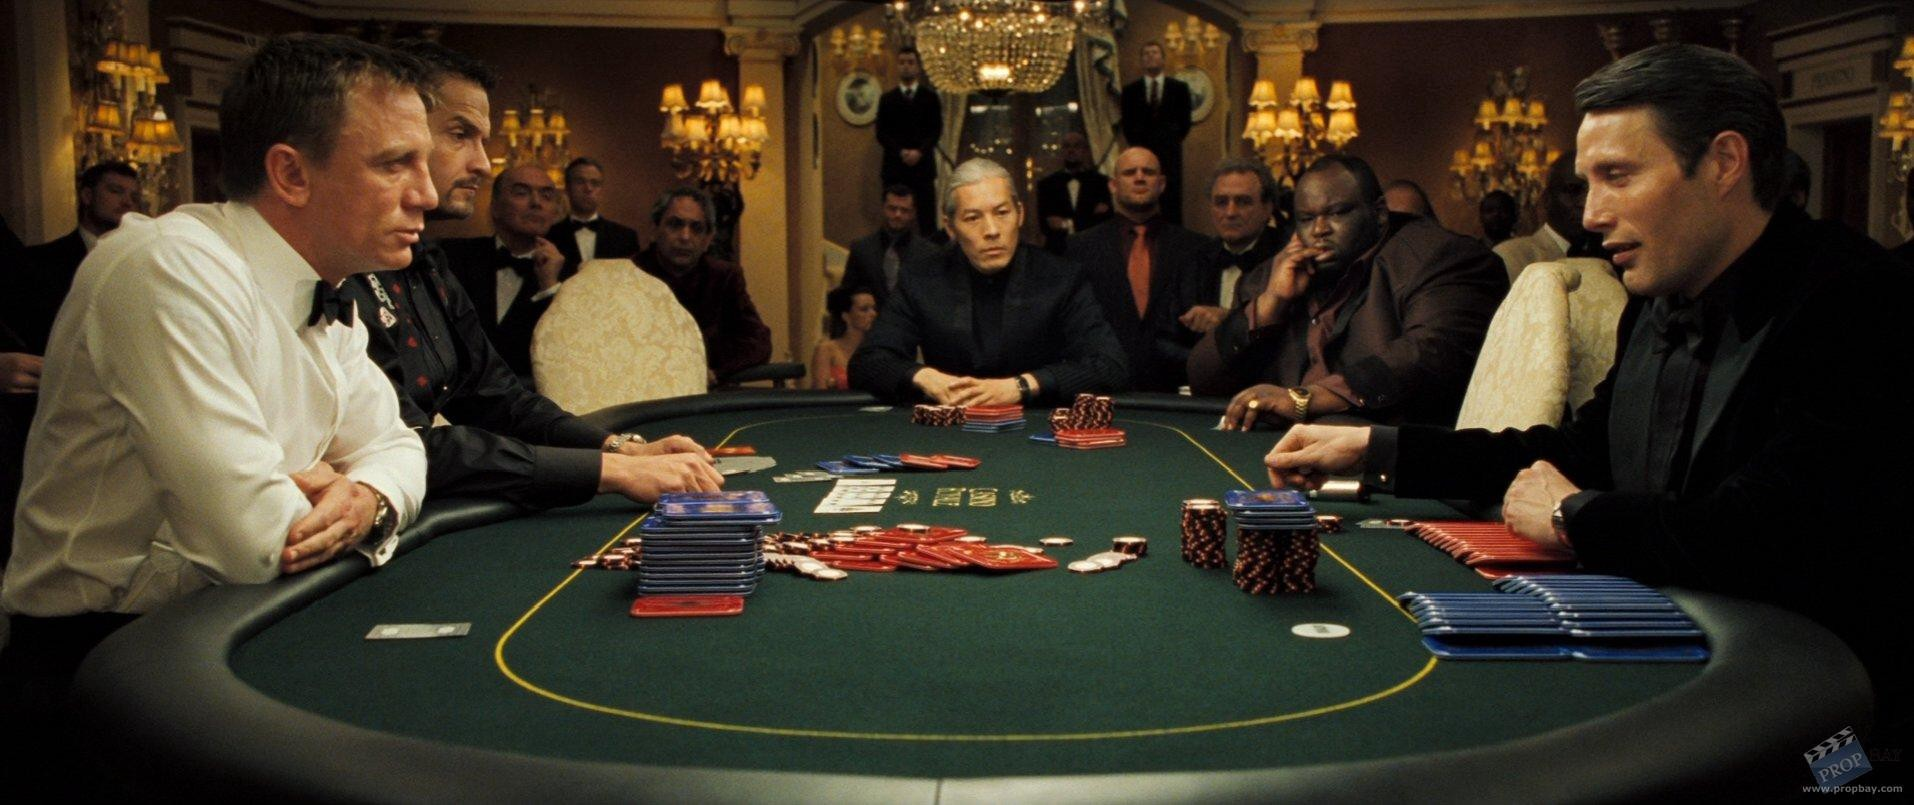 The Best And Most Trusted Poker Gambling Site No. 1